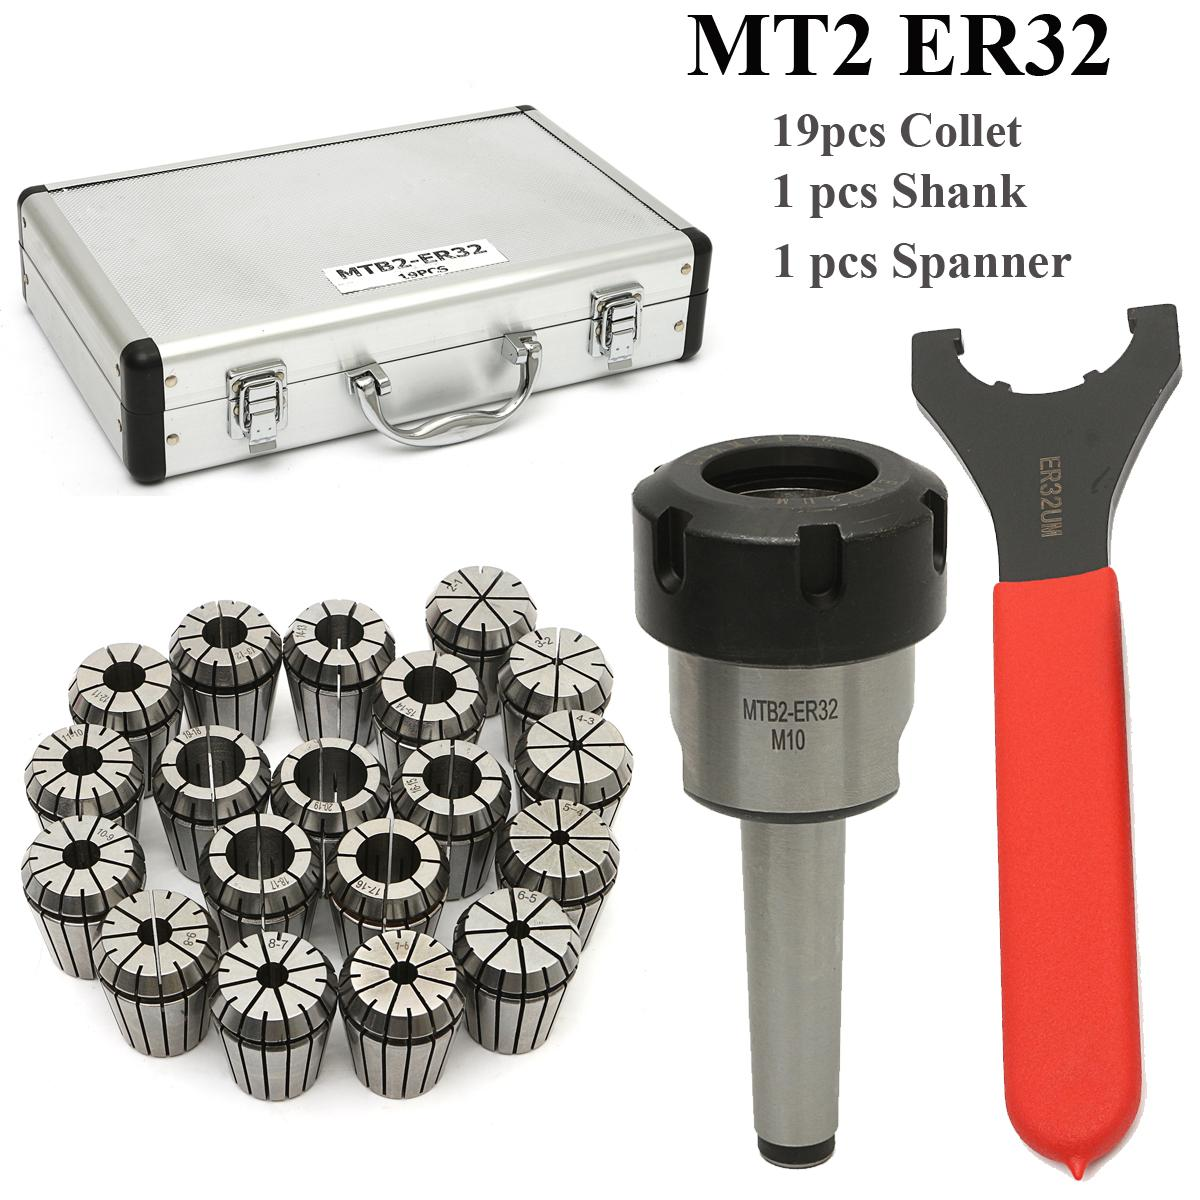 19Pcs ER32 Spring Collet Set with 1pc MT2 ER32 M10 Collet Chuck Taper Holder for CNC Engraving Machine and Milling Lathe Tool new 19pcs er32 spring collet set with mt2 er32 m10 collet chuck taper holder for cnc engraving machine and milling lathe tool